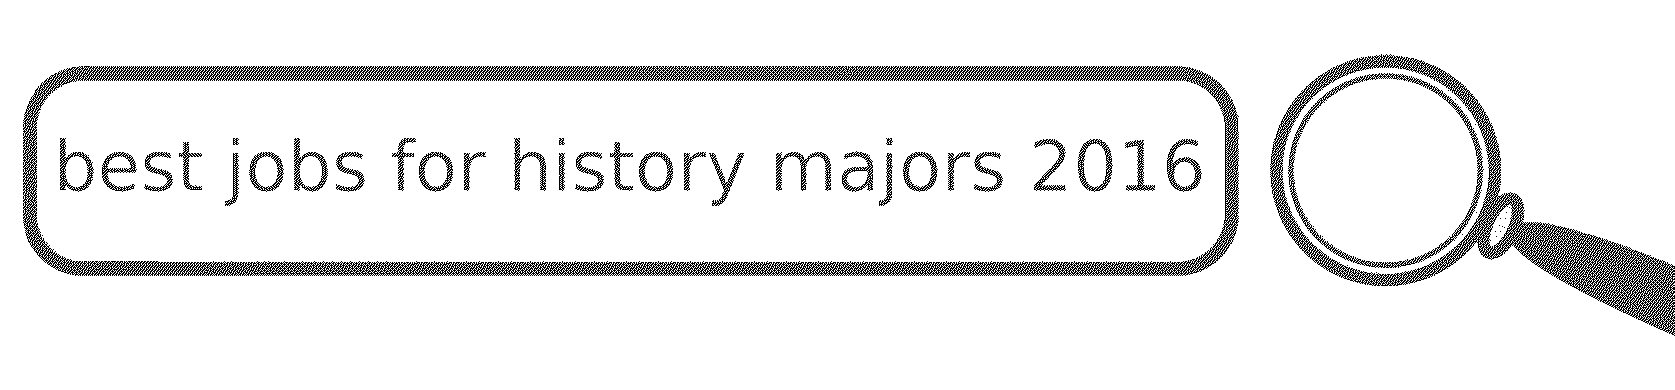 Best Jobs for History Majors 2016